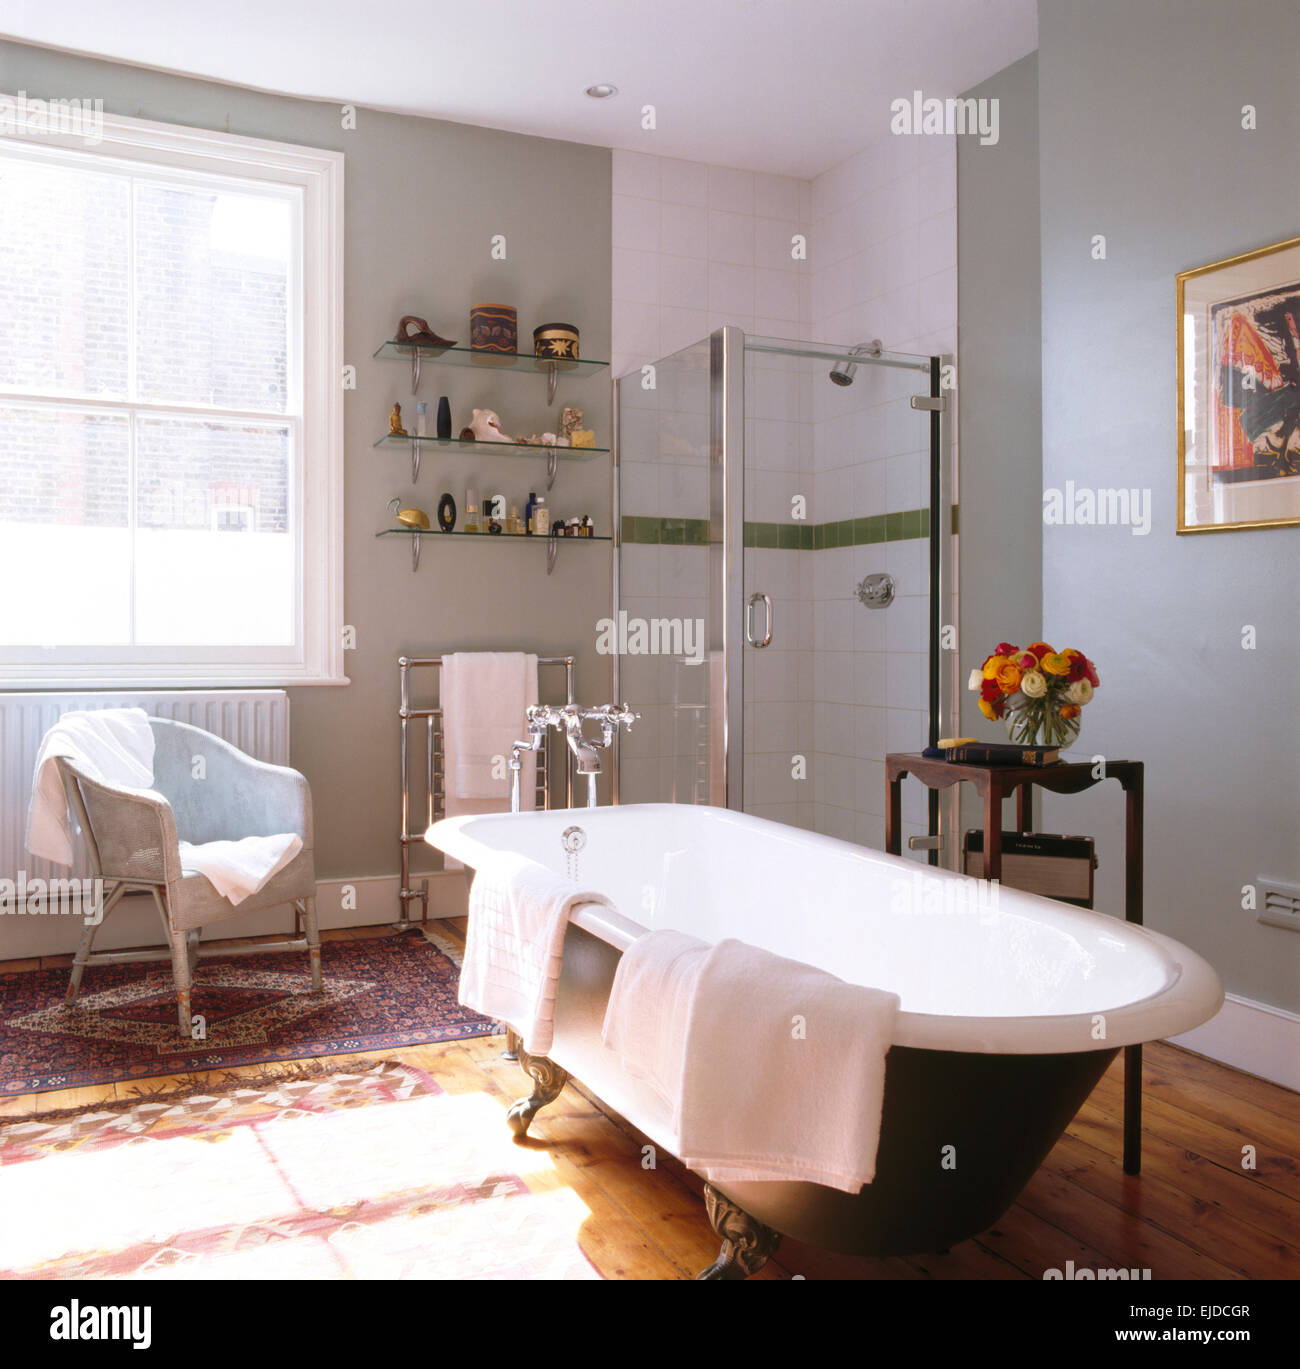 Rolltop bath and glass shower carbinet in pastel blue townhouse ...